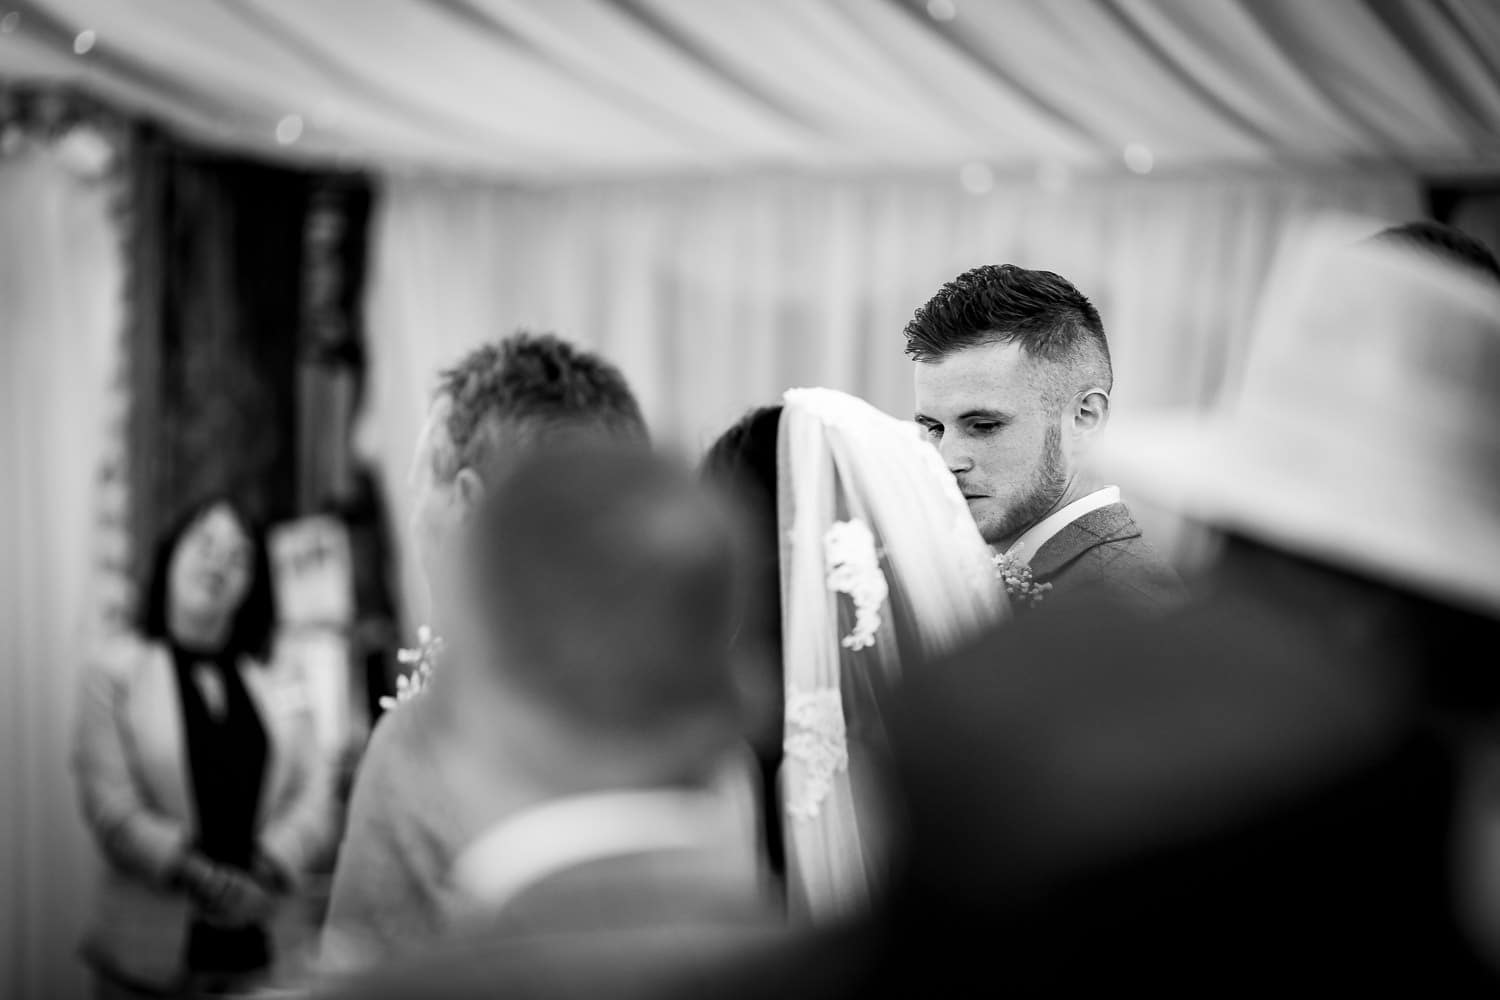 Groom looks lovingly at his bride during ceremony at The Granary at Fawsley Wedding barn in Northampton